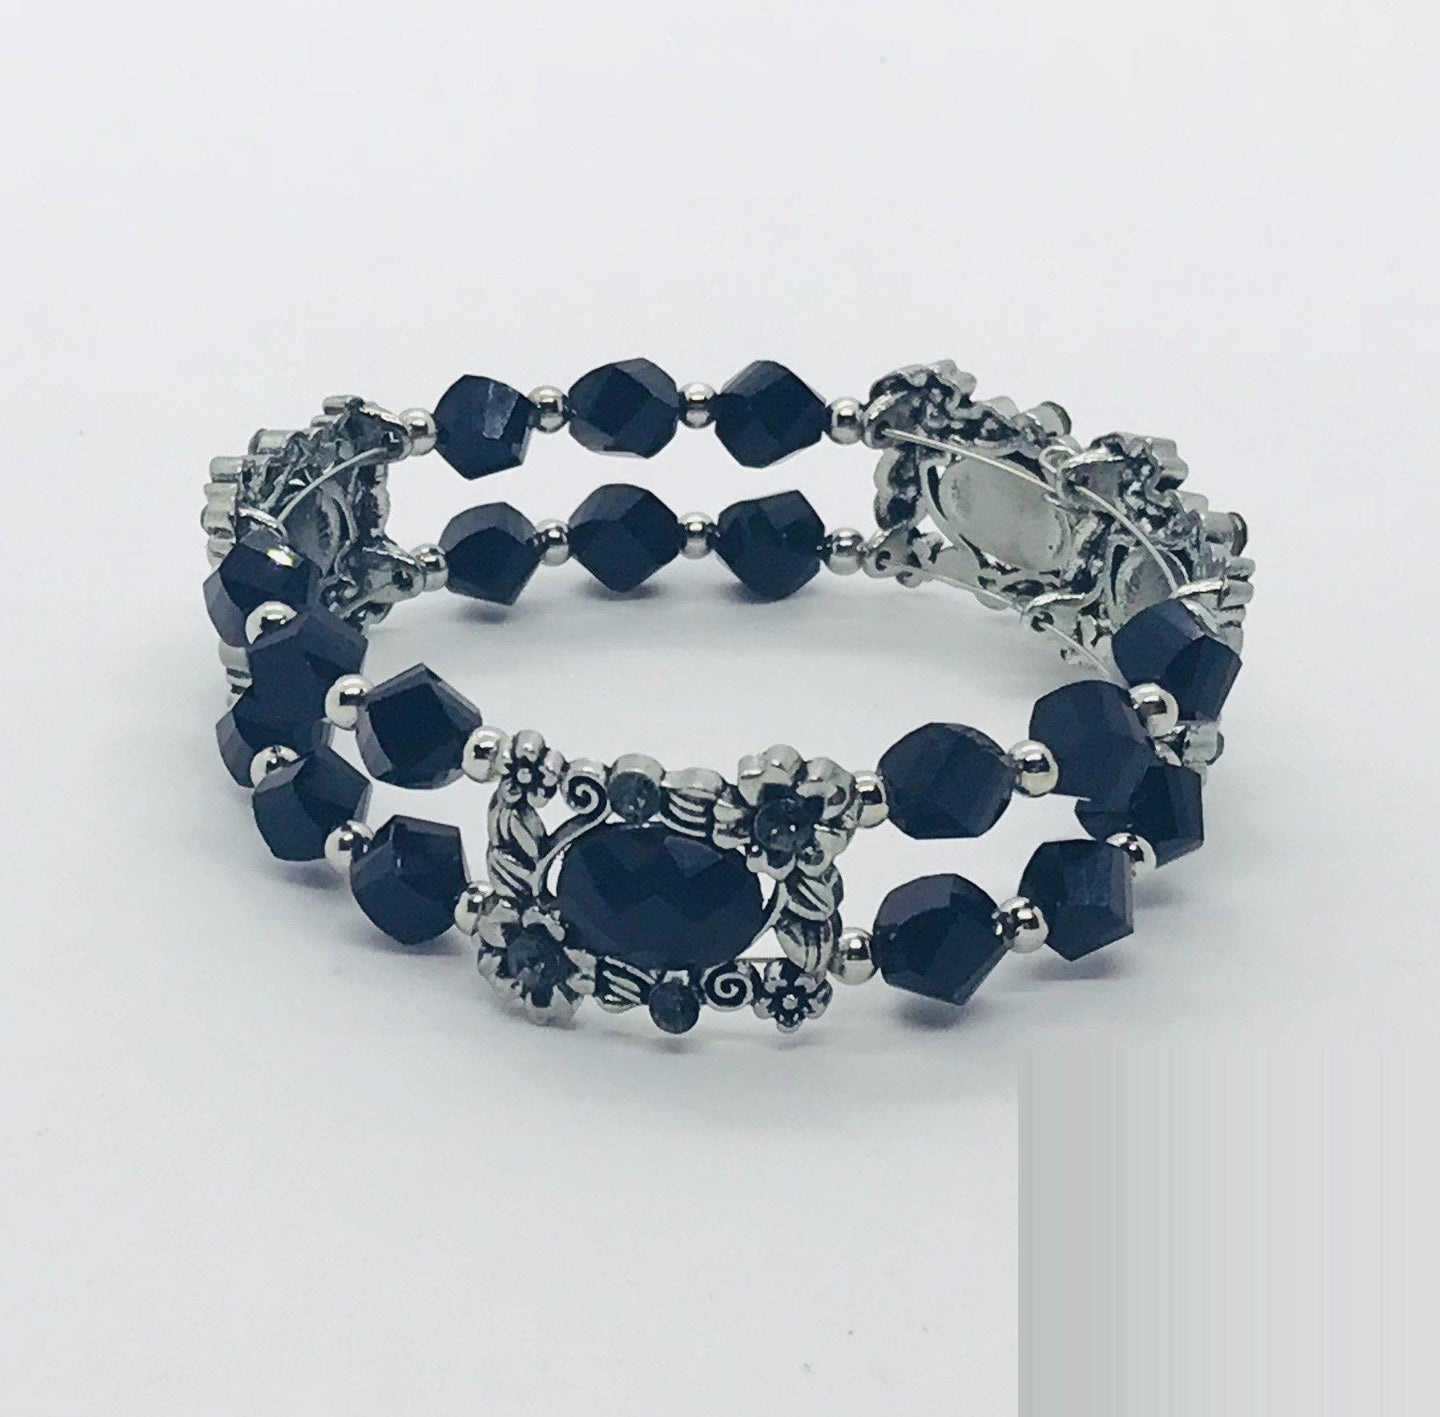 Glass Bead Cuff Bracelet - MB411